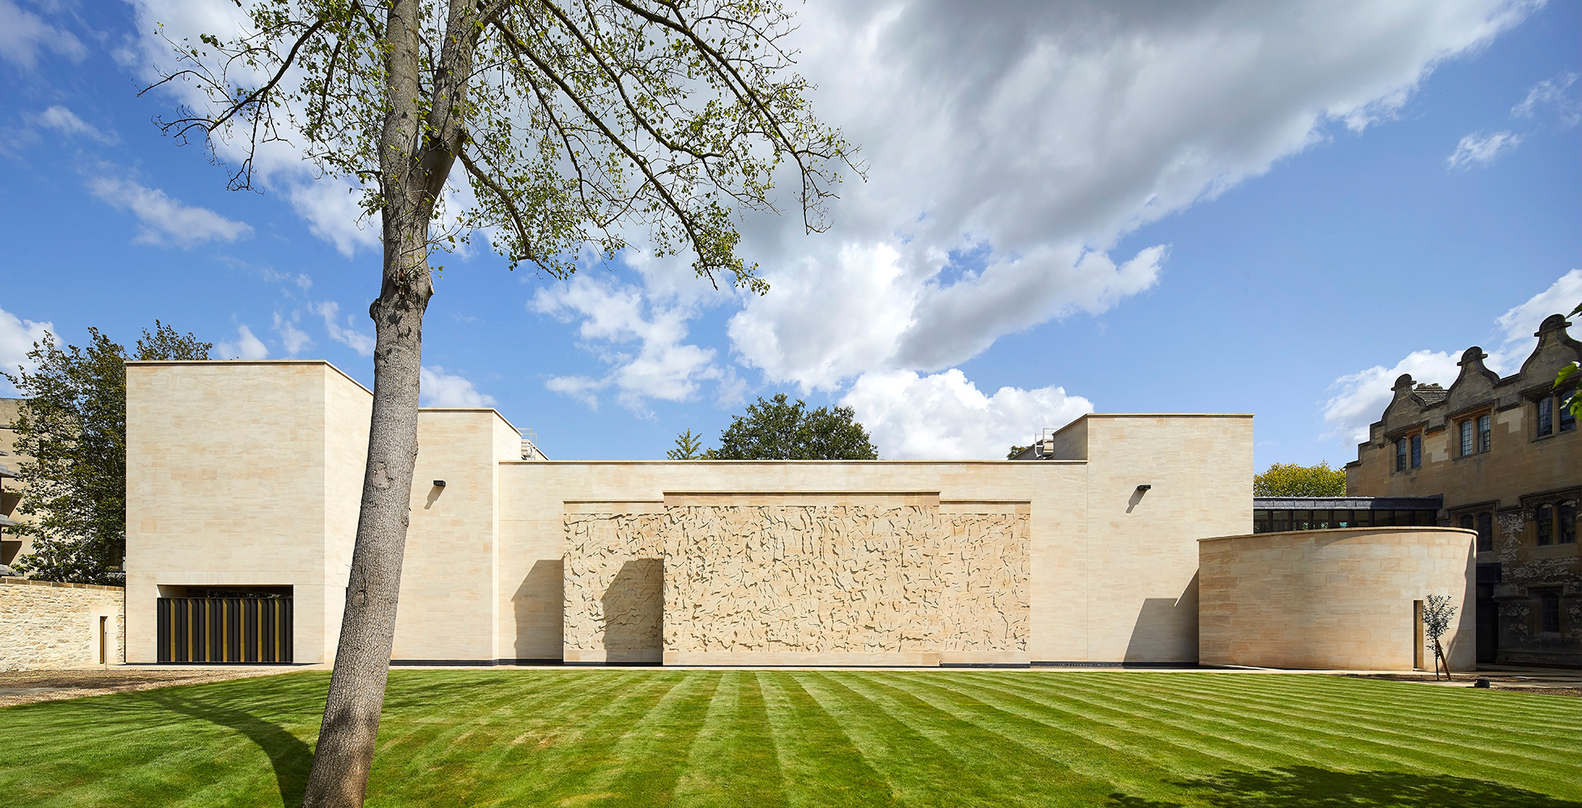 RIBA Announces 2021 National Award Winners Highlighting UK's Best New Buildings,Library and Study Centre St Johns College Oxford University by Wright & Wright Architects . Image © Nick Hufton